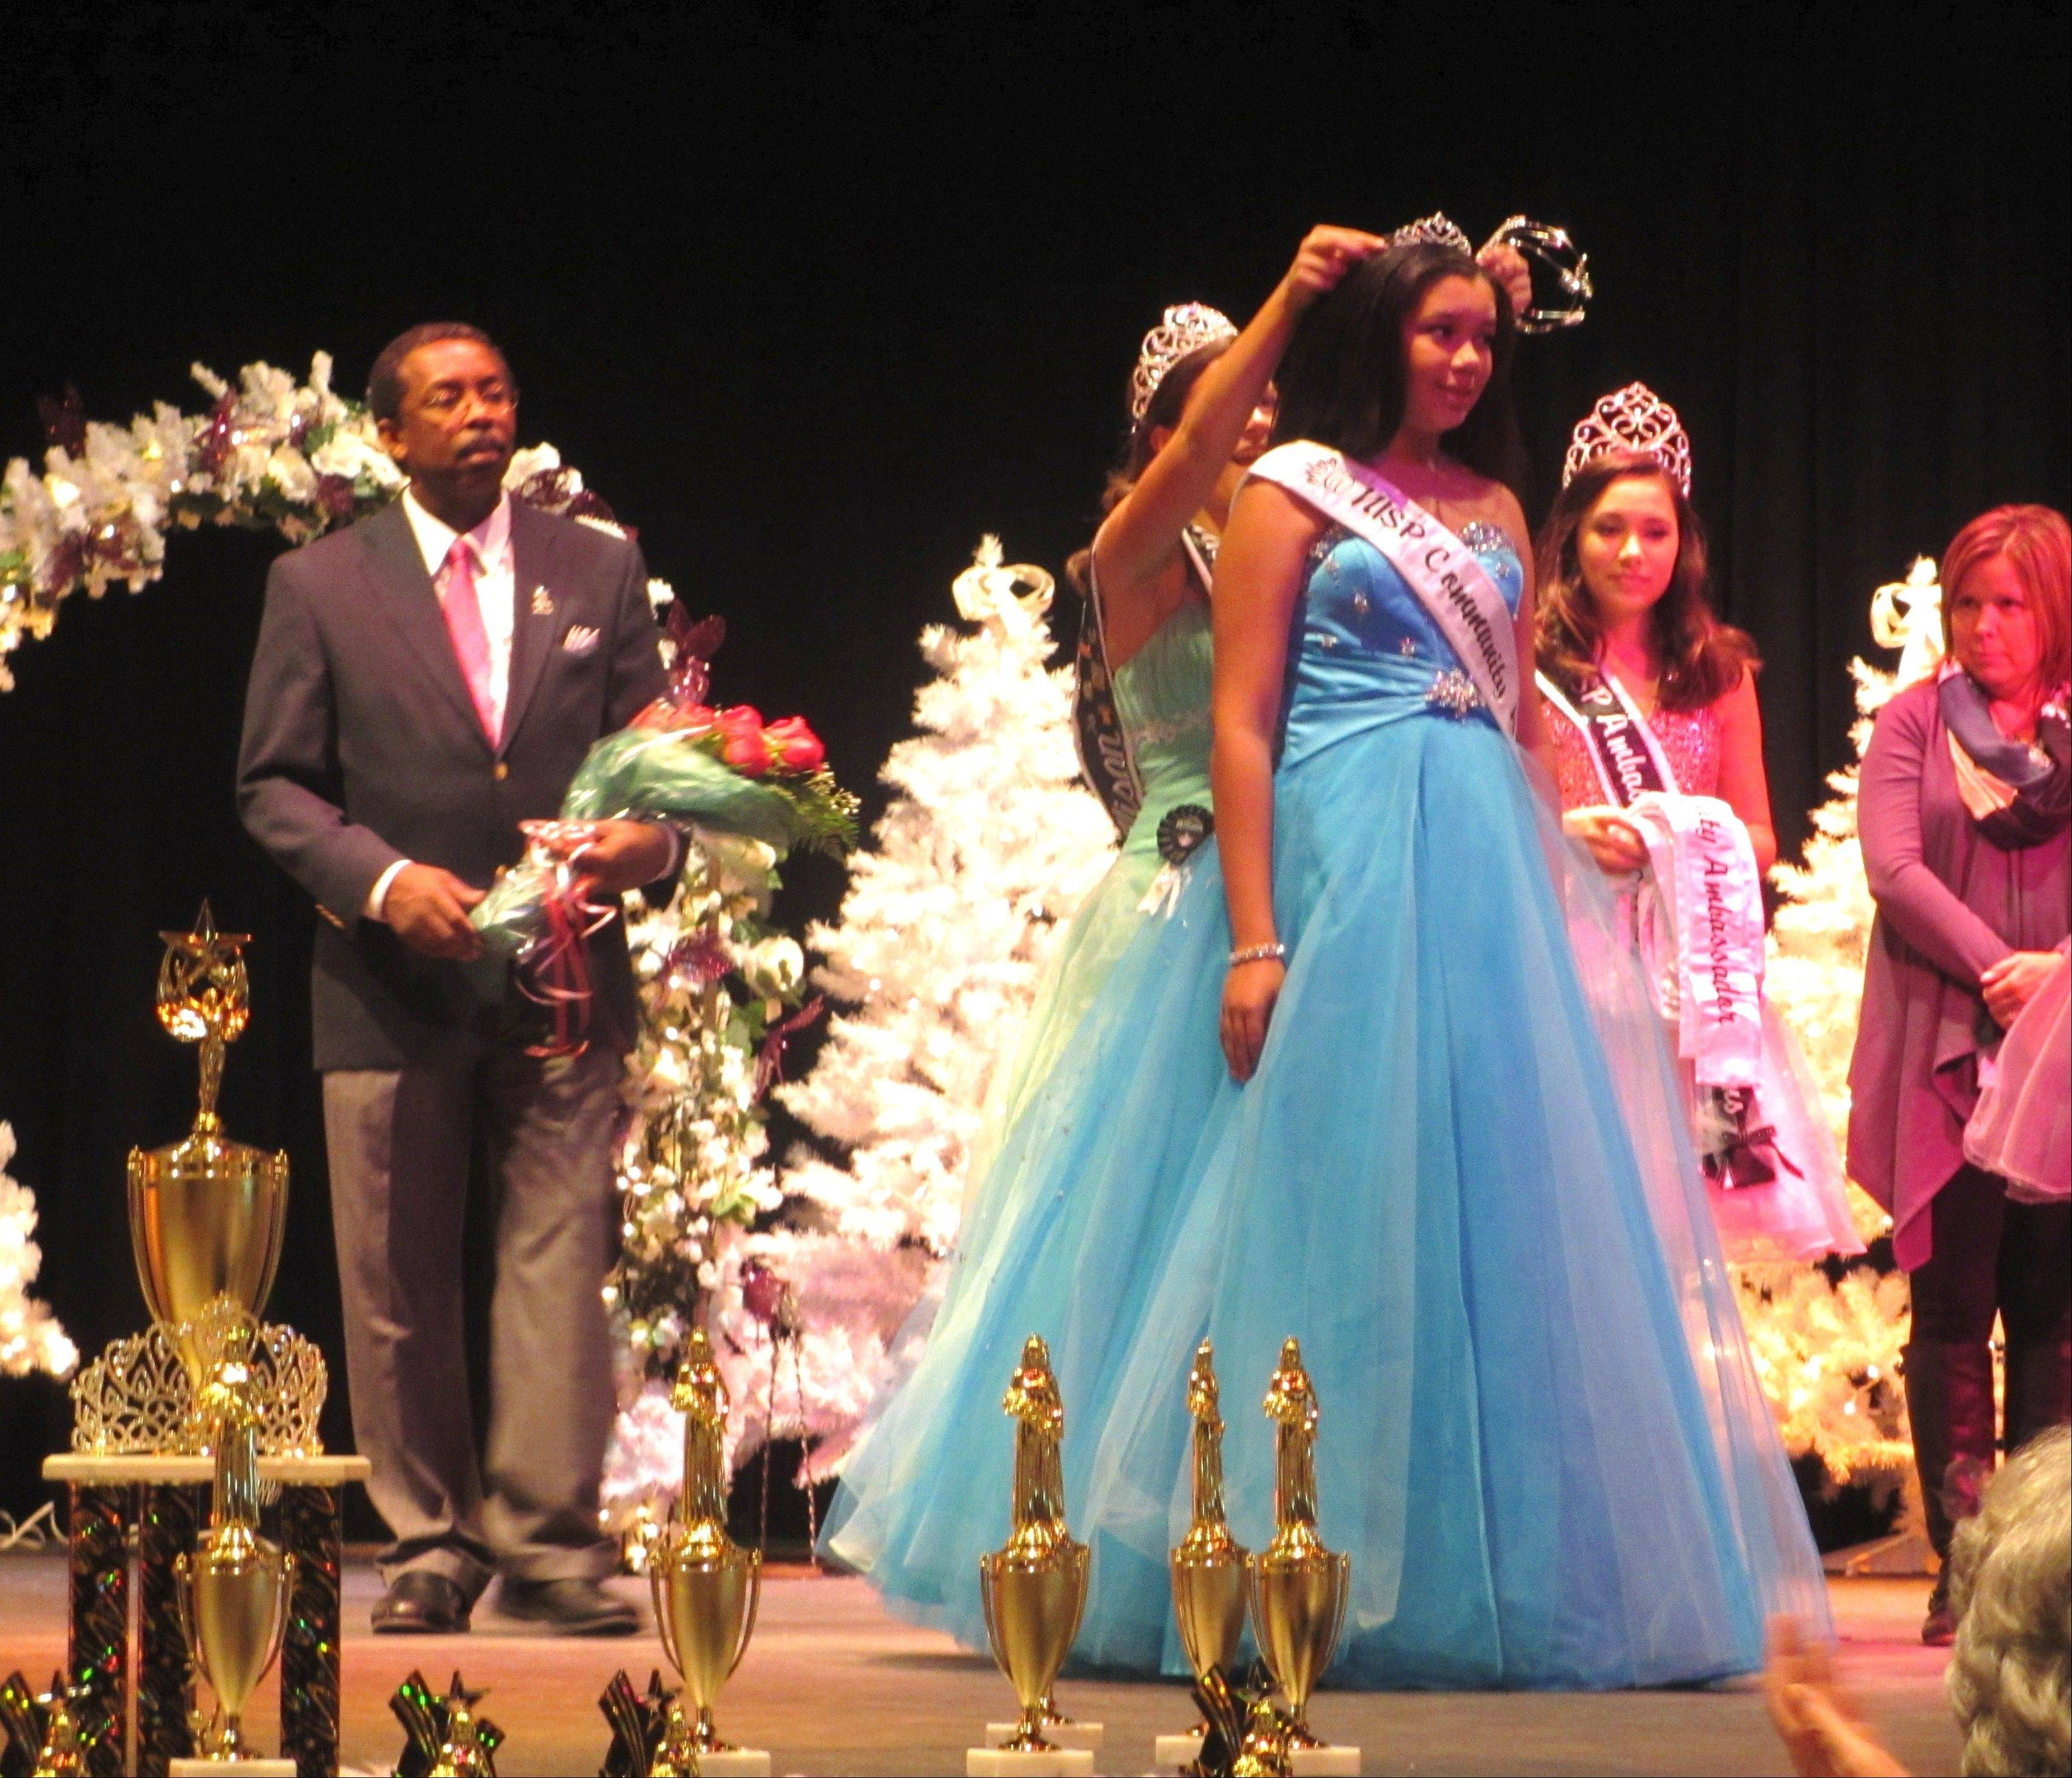 Arielle Christopher, 13, of Streamwood, is crowned Northern Illinois Scholarship Program Community Ambassador at the Northern Illinois Scholarship Program fall pageant.